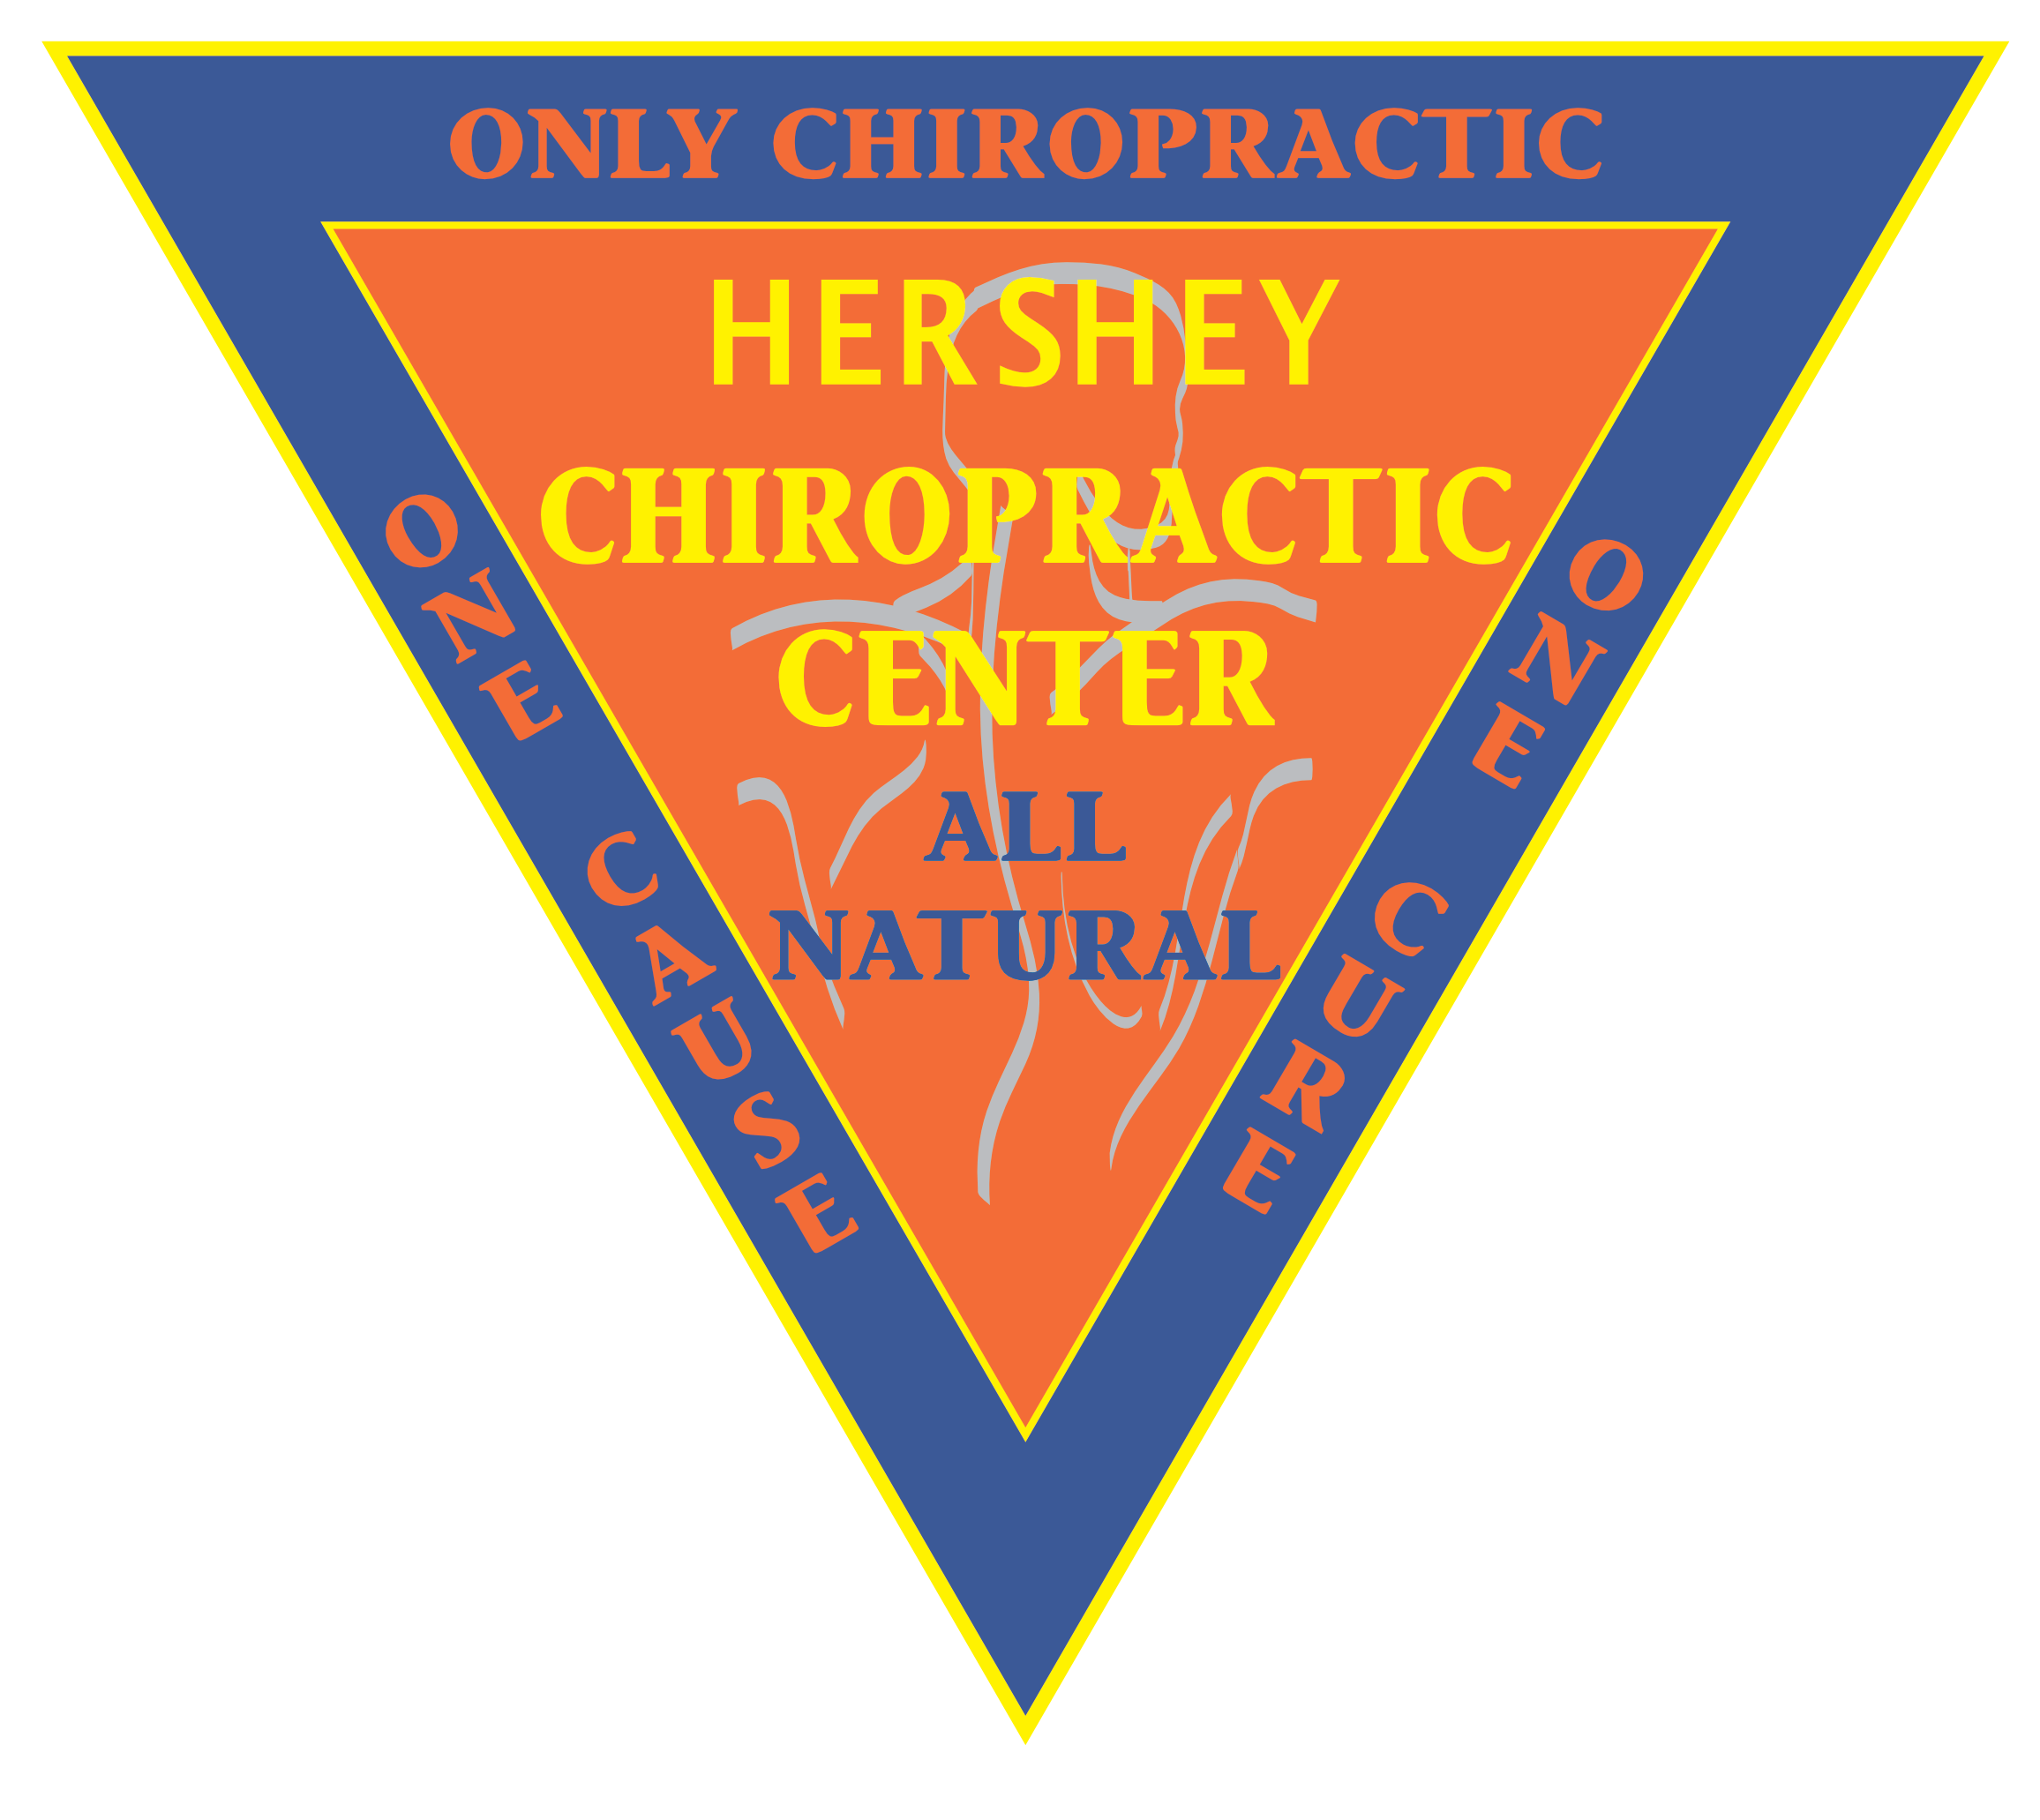 Hershey Chiropractic Center